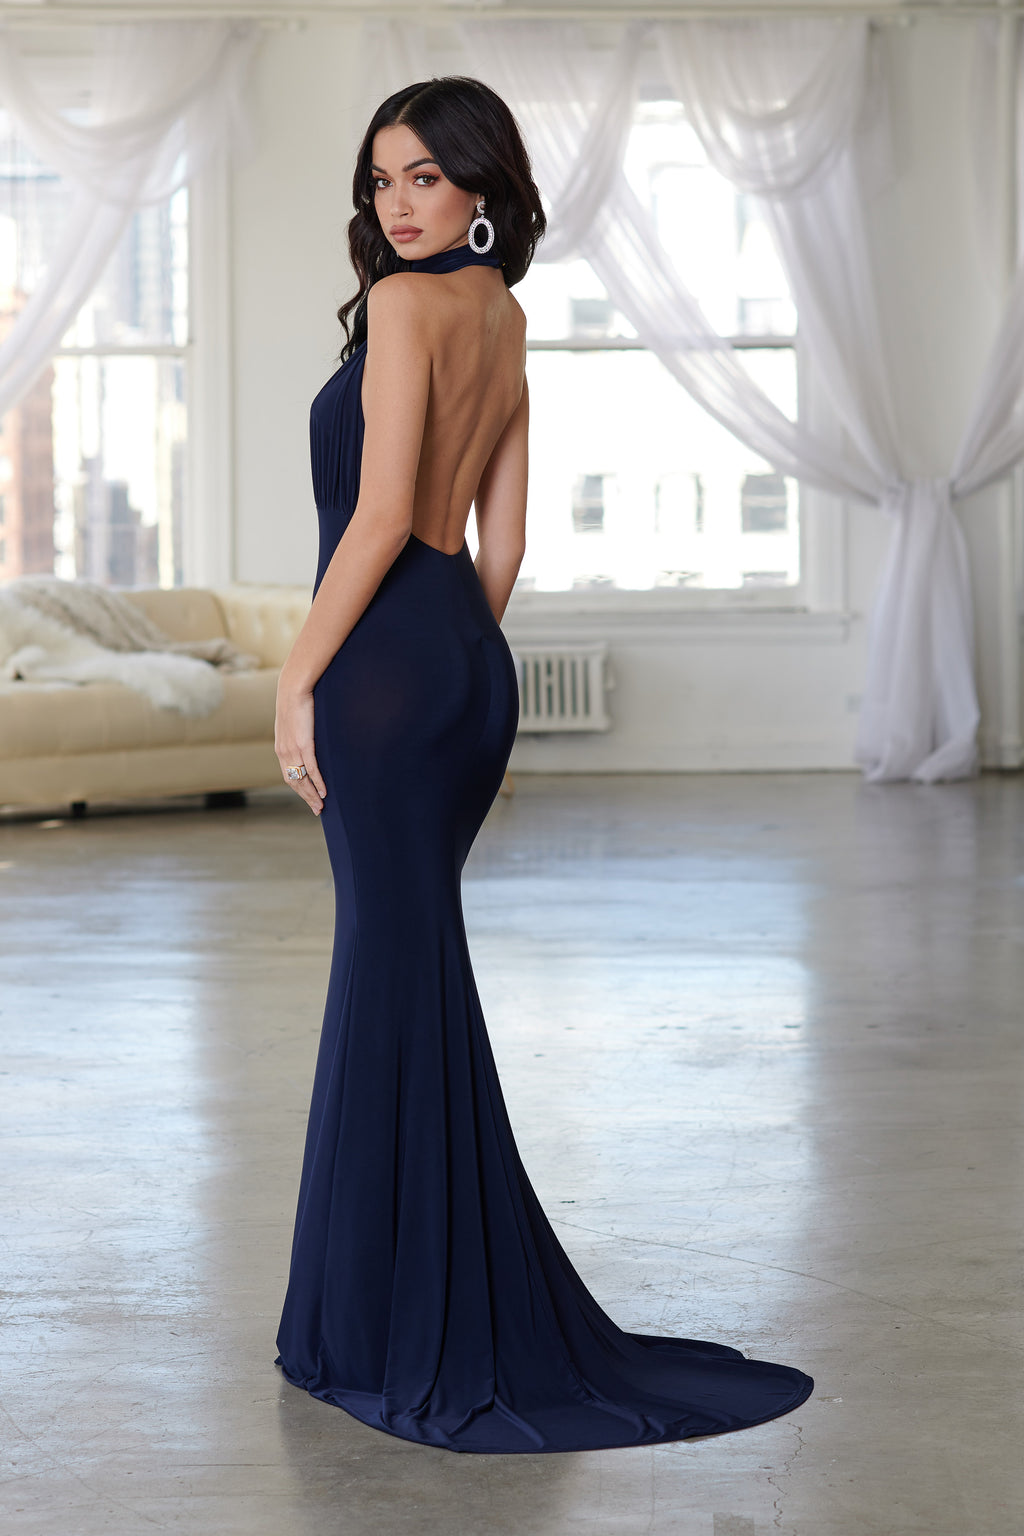 Navy Backless Halterneck Fishtail Maxi Dress - Club L London